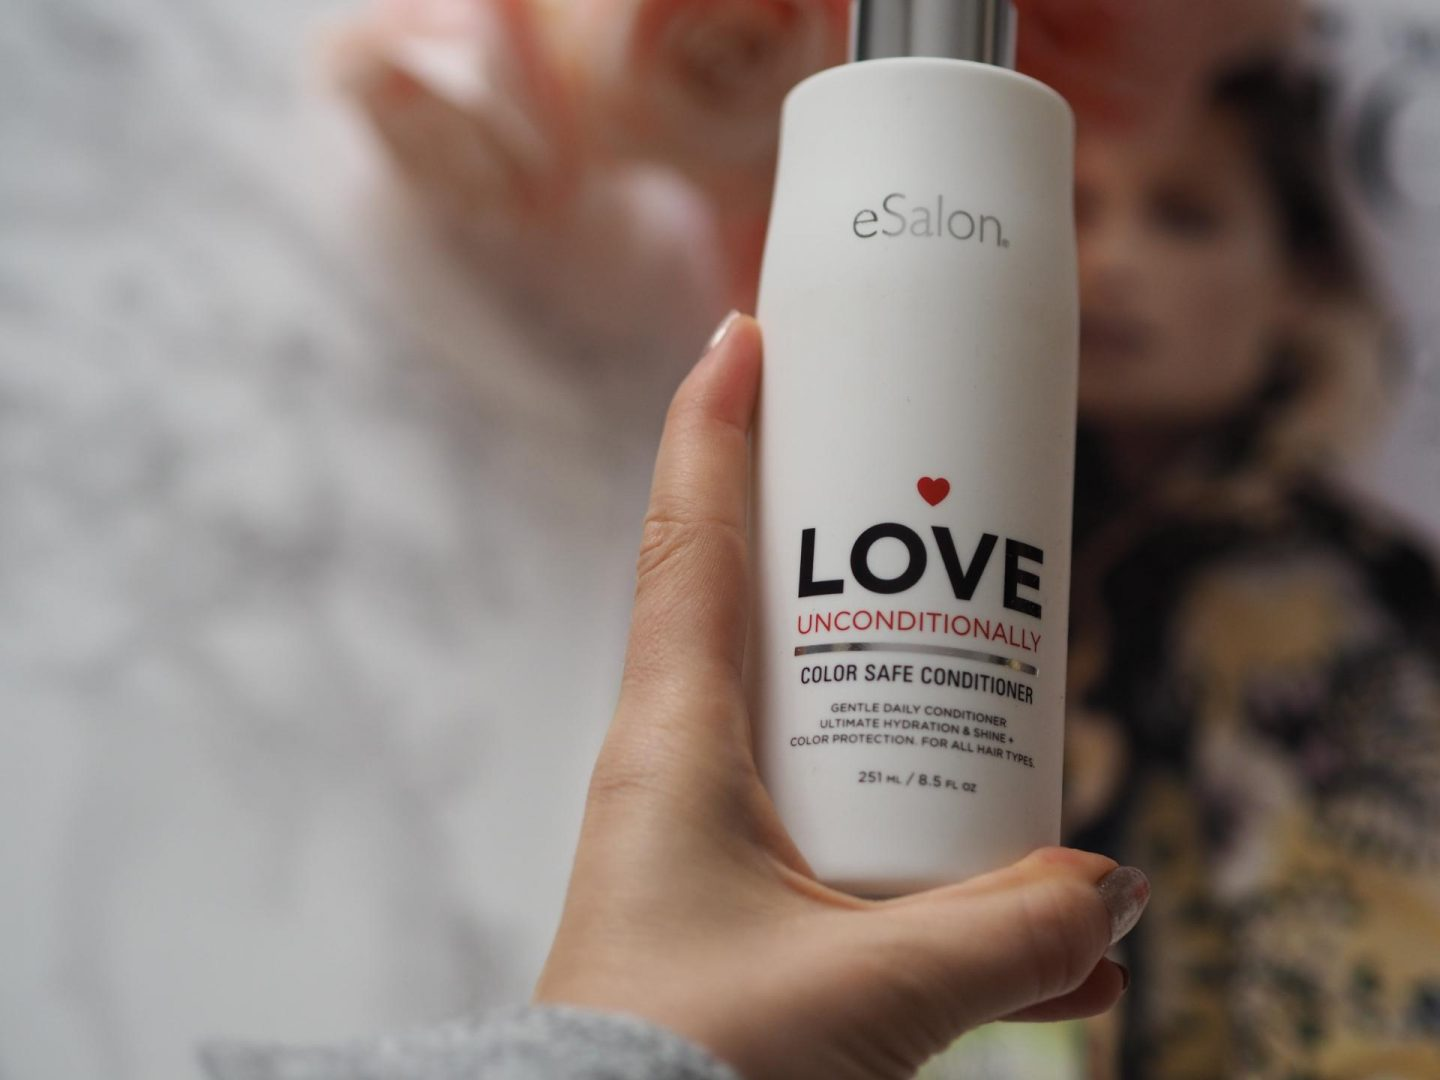 eSalon Heart Lock It Color Safe Shampoo and eSalon Love Unconditionally Color Safe Conditioner